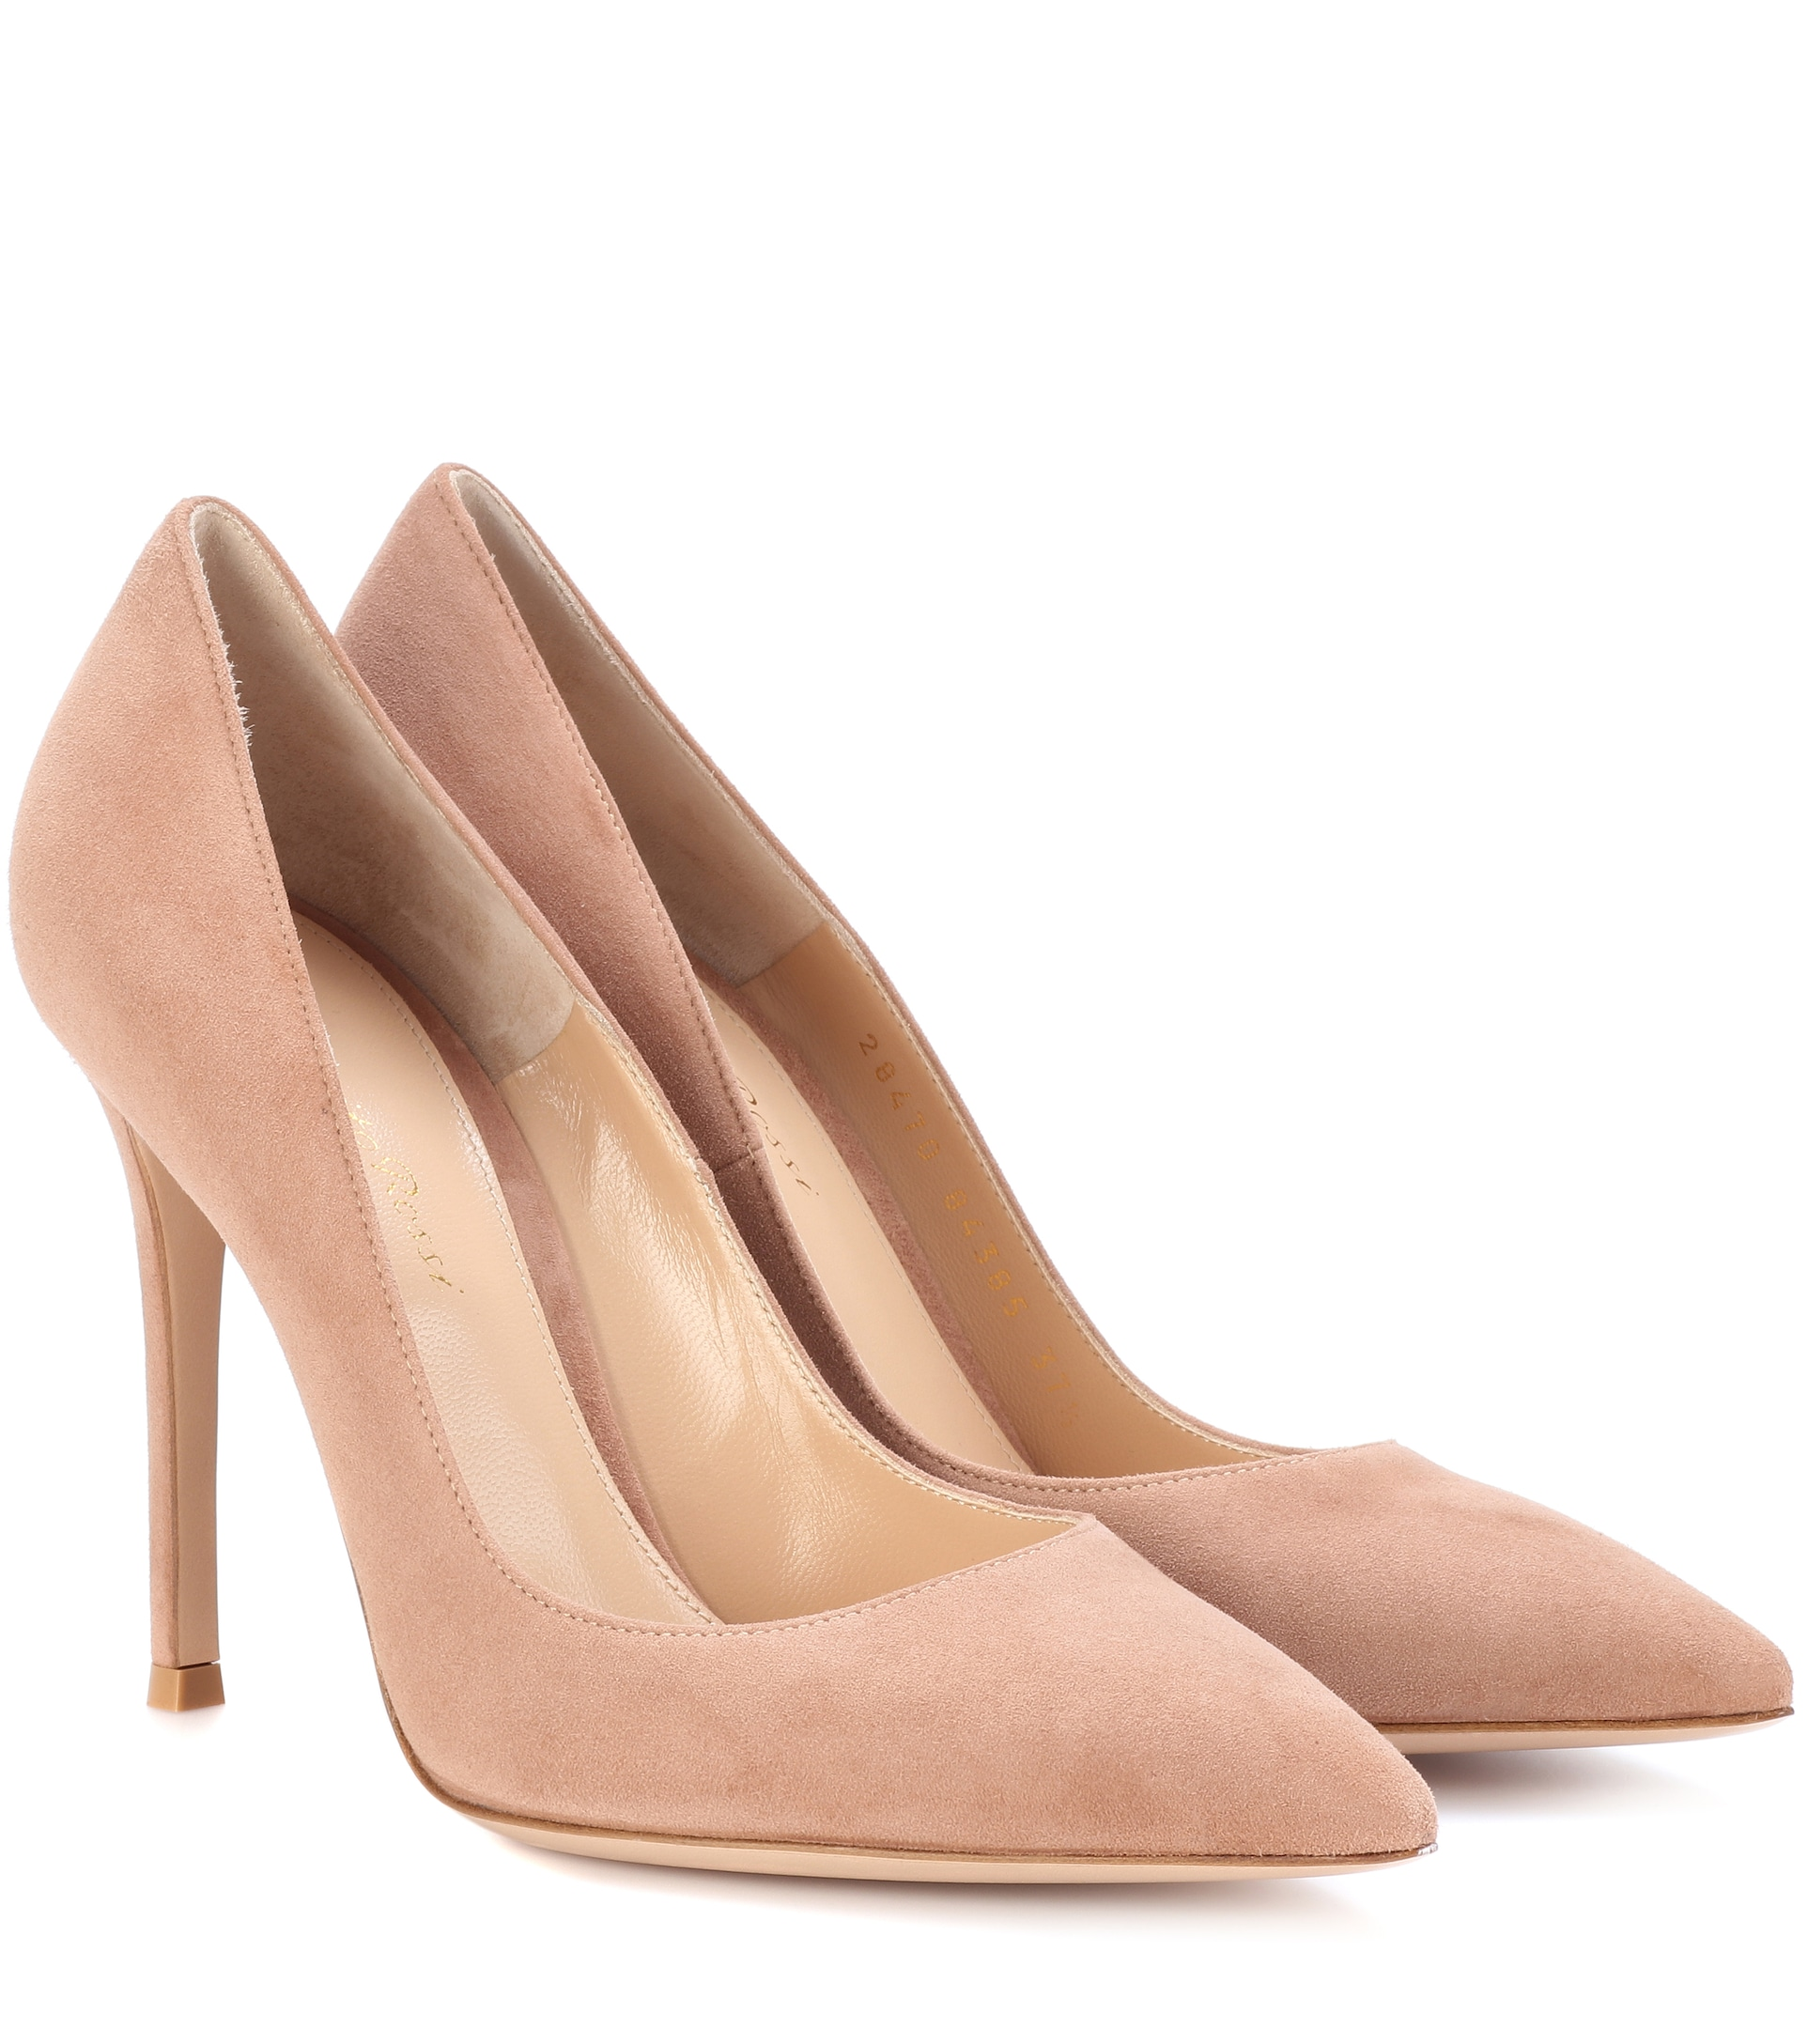 Nude shoes for every occasion and